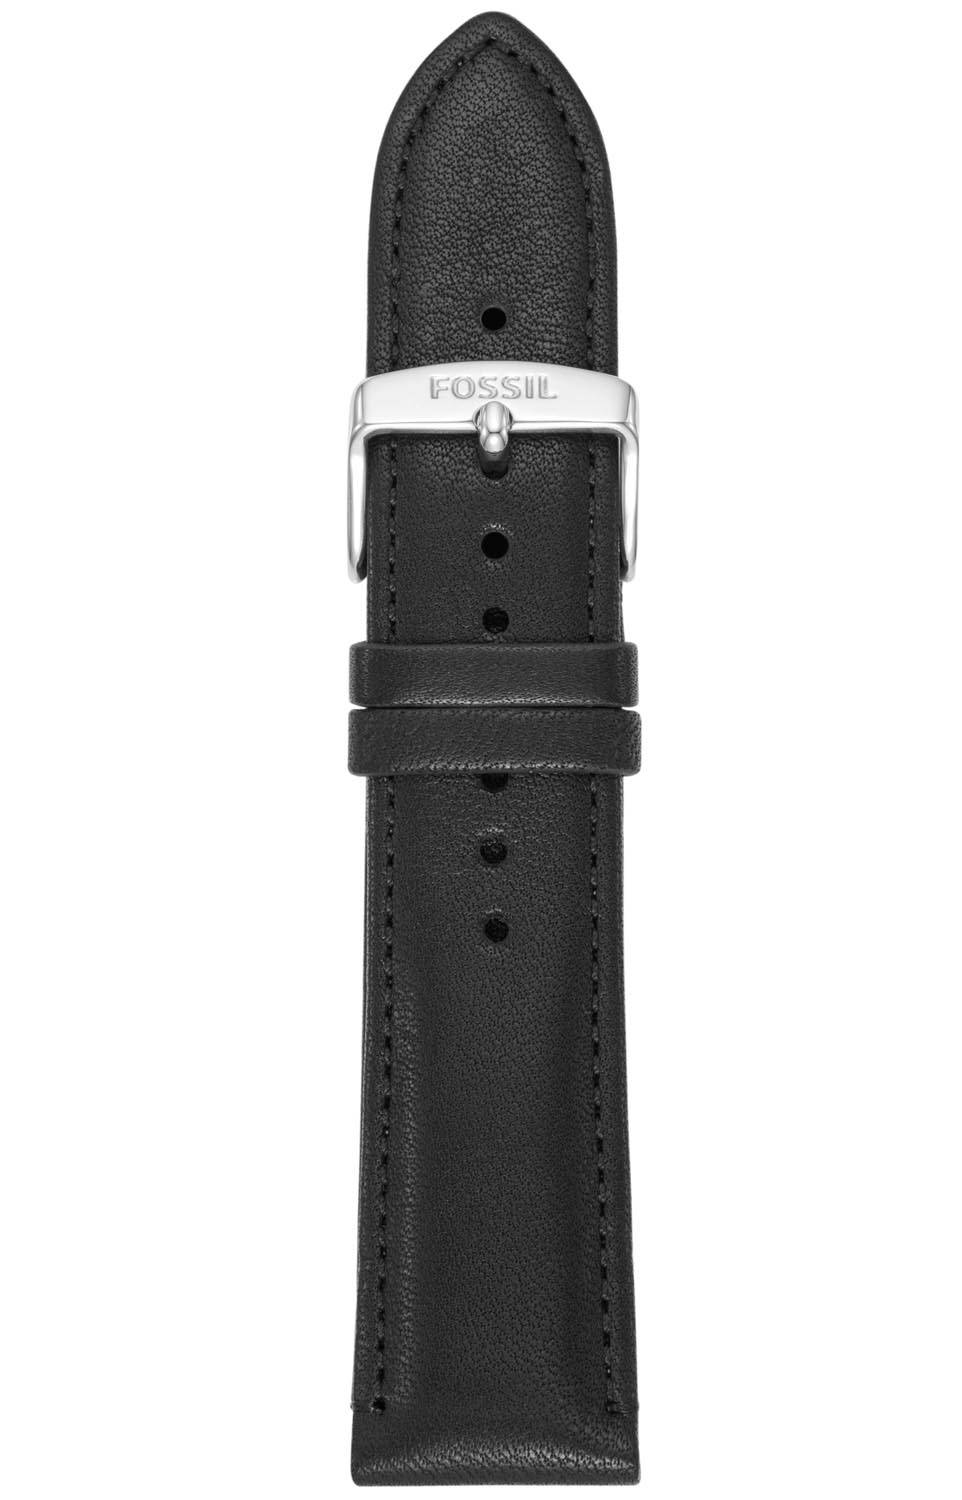 Fossil 22mm Black Leather Strap S221347